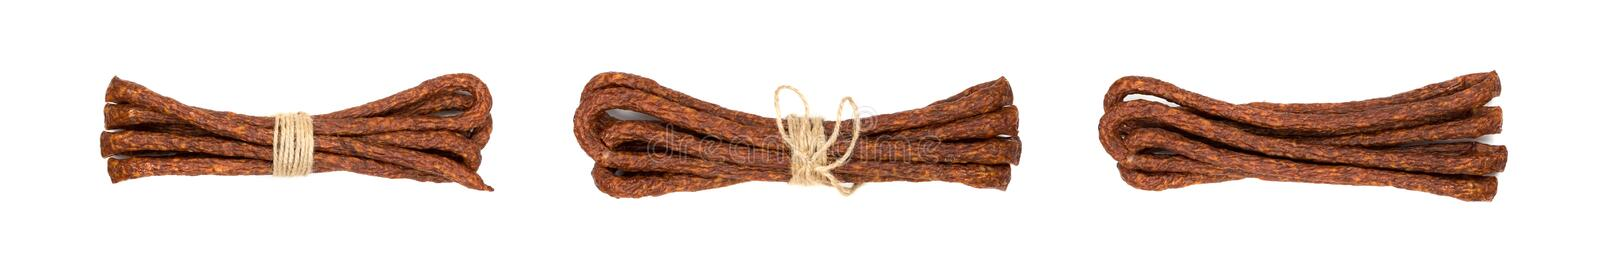 Long thin smoked sausages tied with string isolated on white stock photography